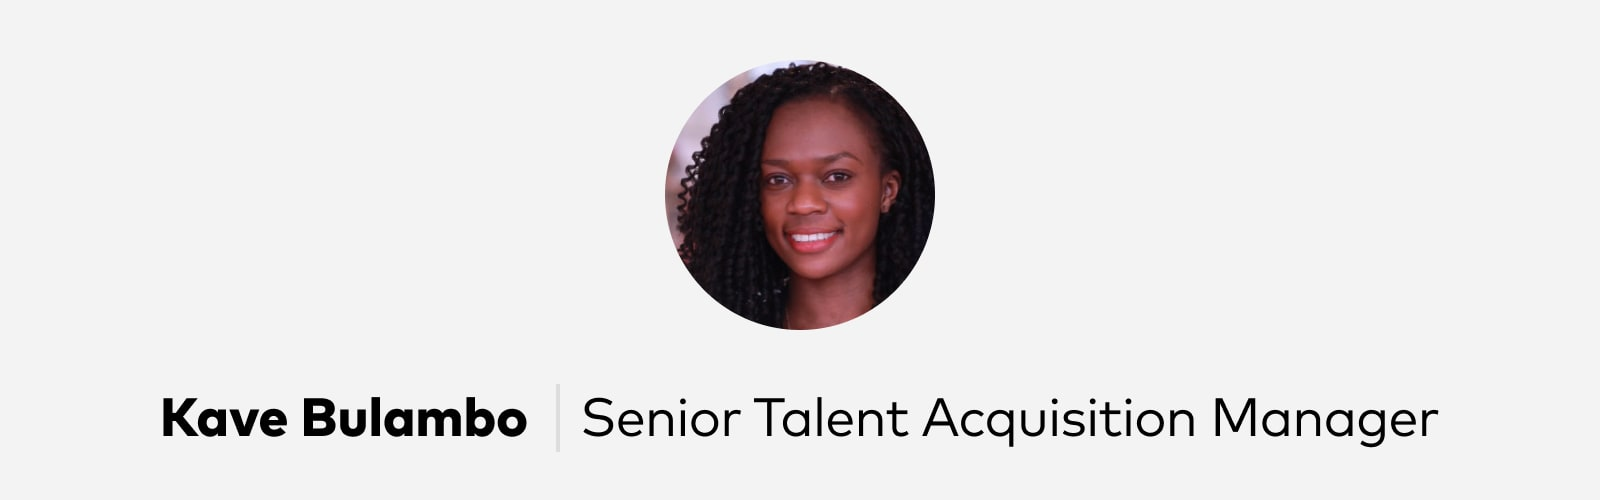 Kave Bulambo Senior Talent Acquisition Manager at Pitch